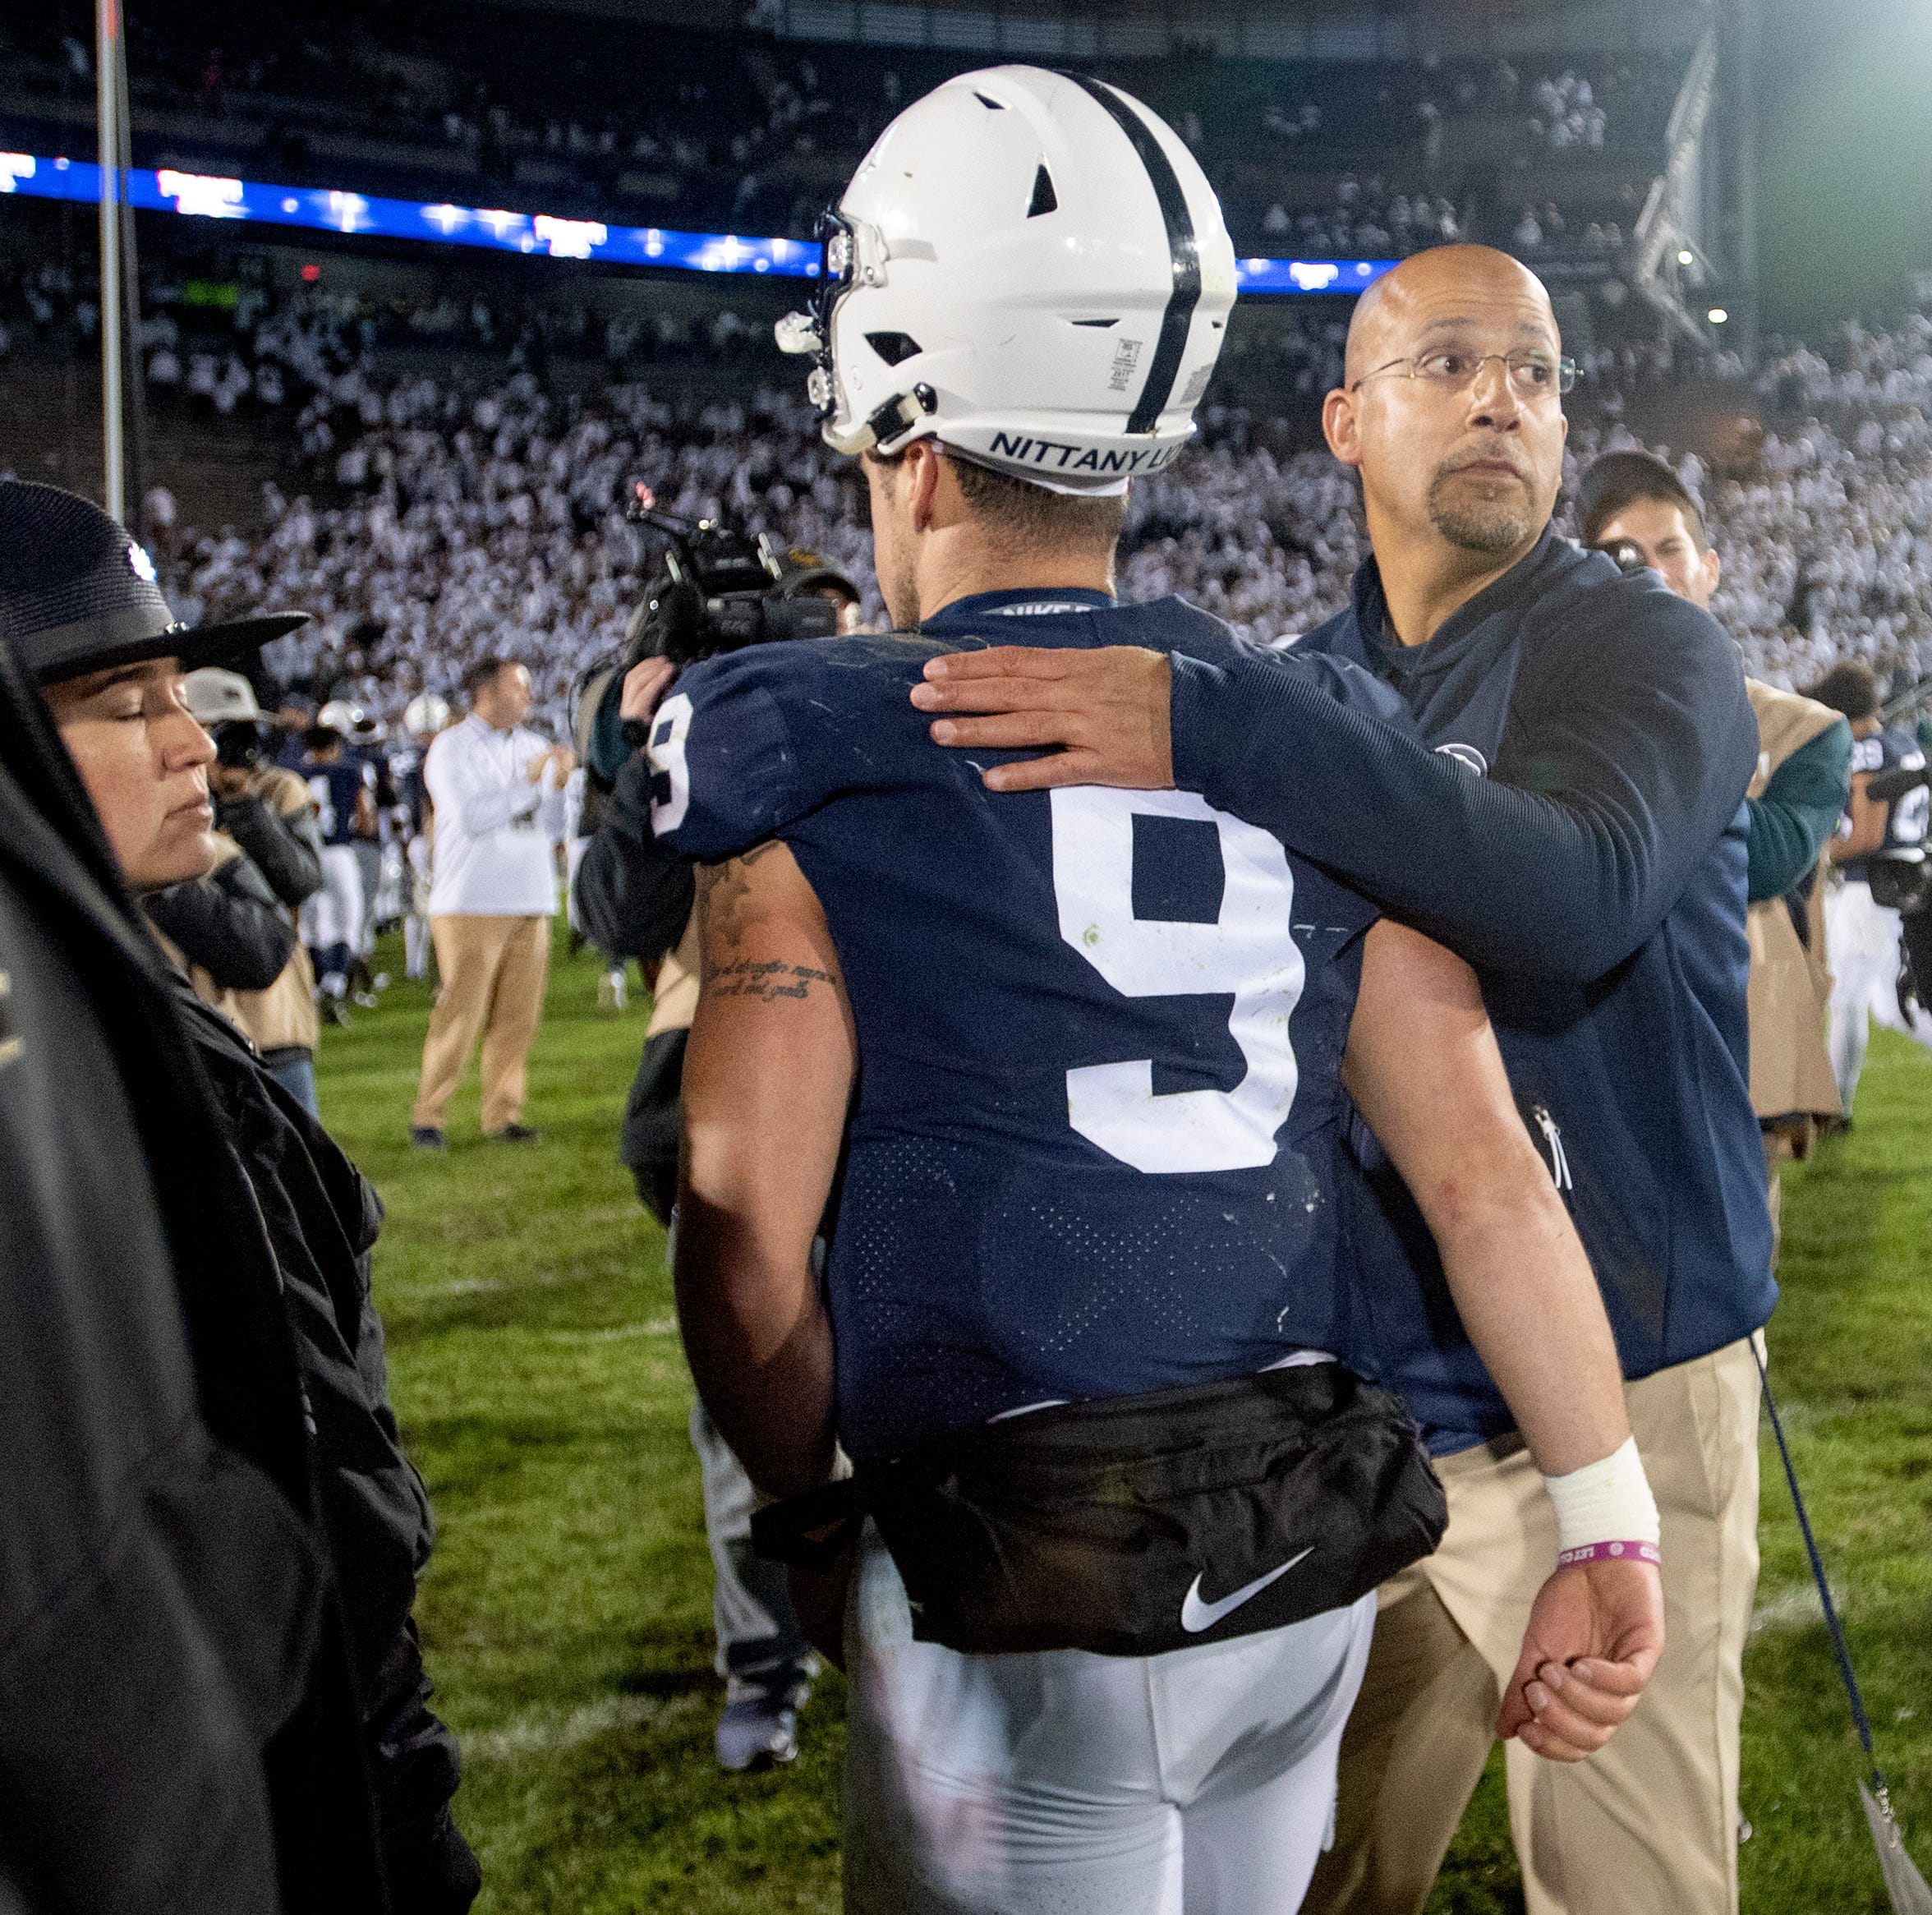 James Franklin focuses on fixing small leaks to get Penn State back on track at Indiana